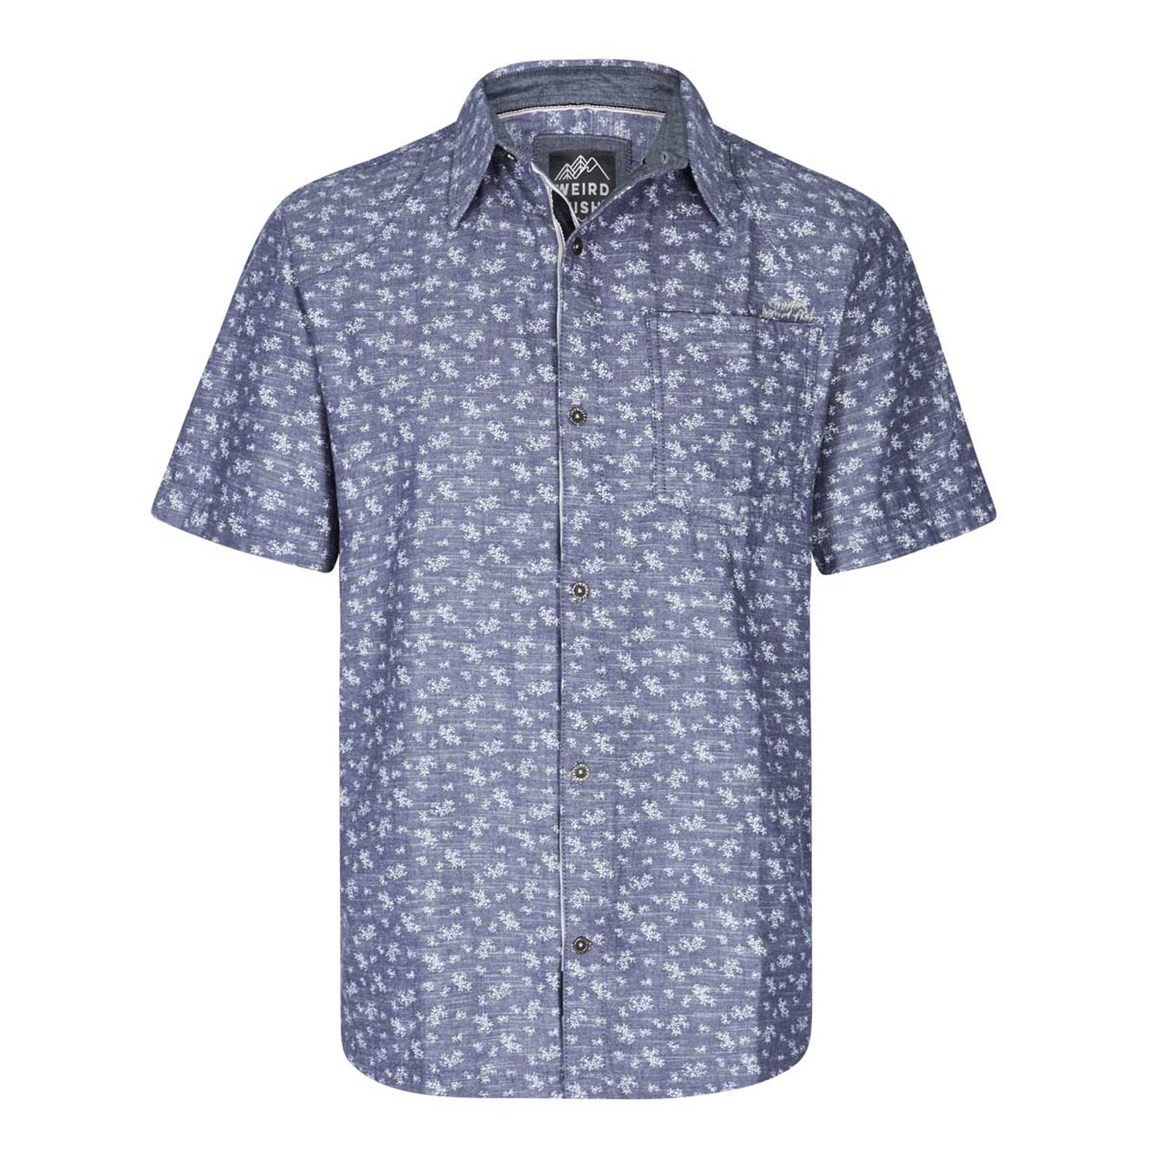 Weird Fish Niven Floral Print Short Sleeve Shirt Denim